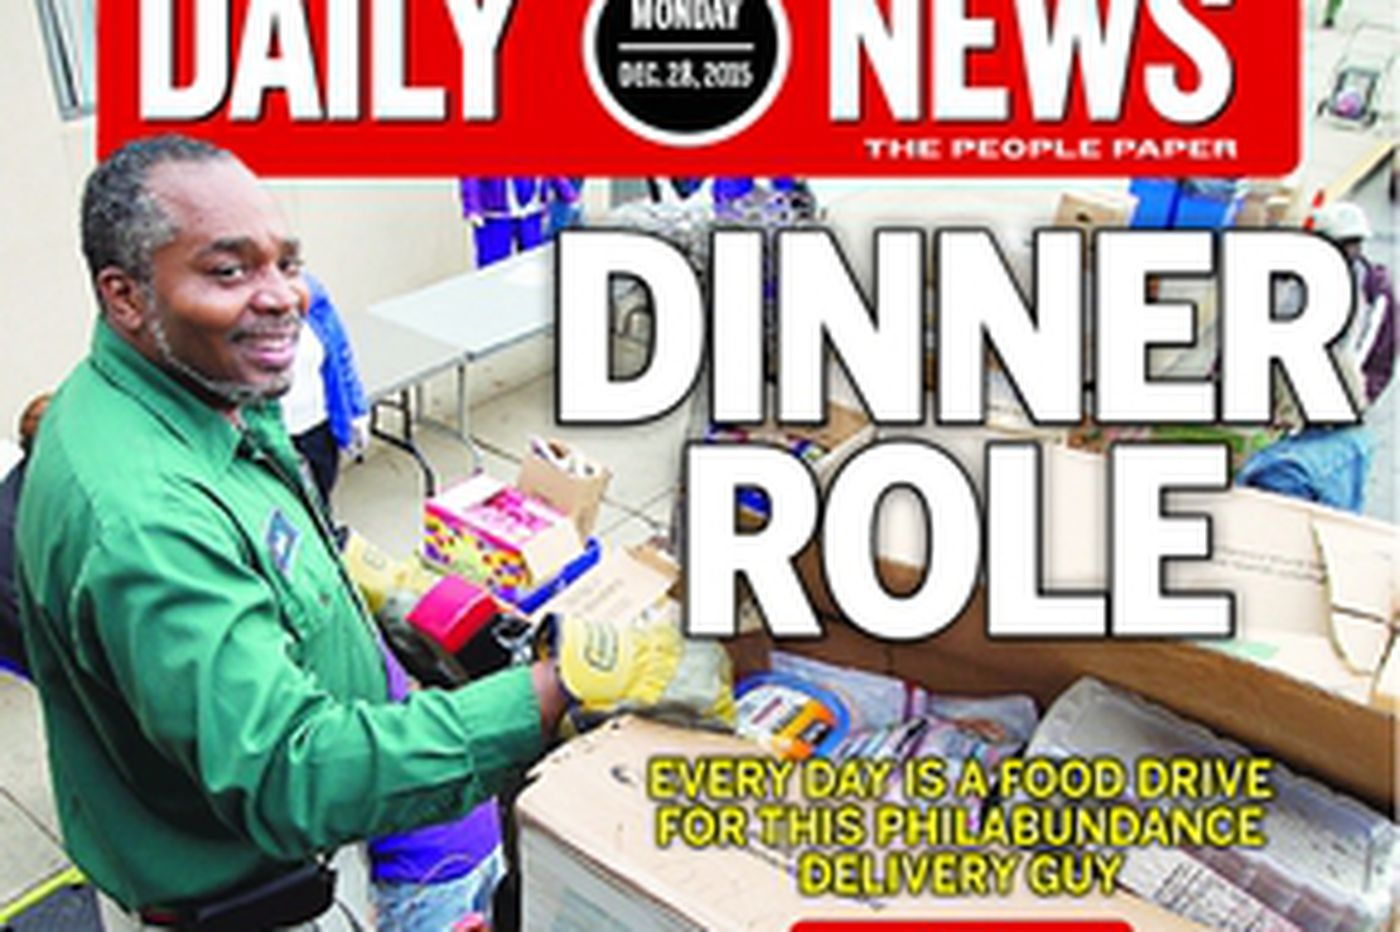 Dailynews Monthly Covers 12/28/15